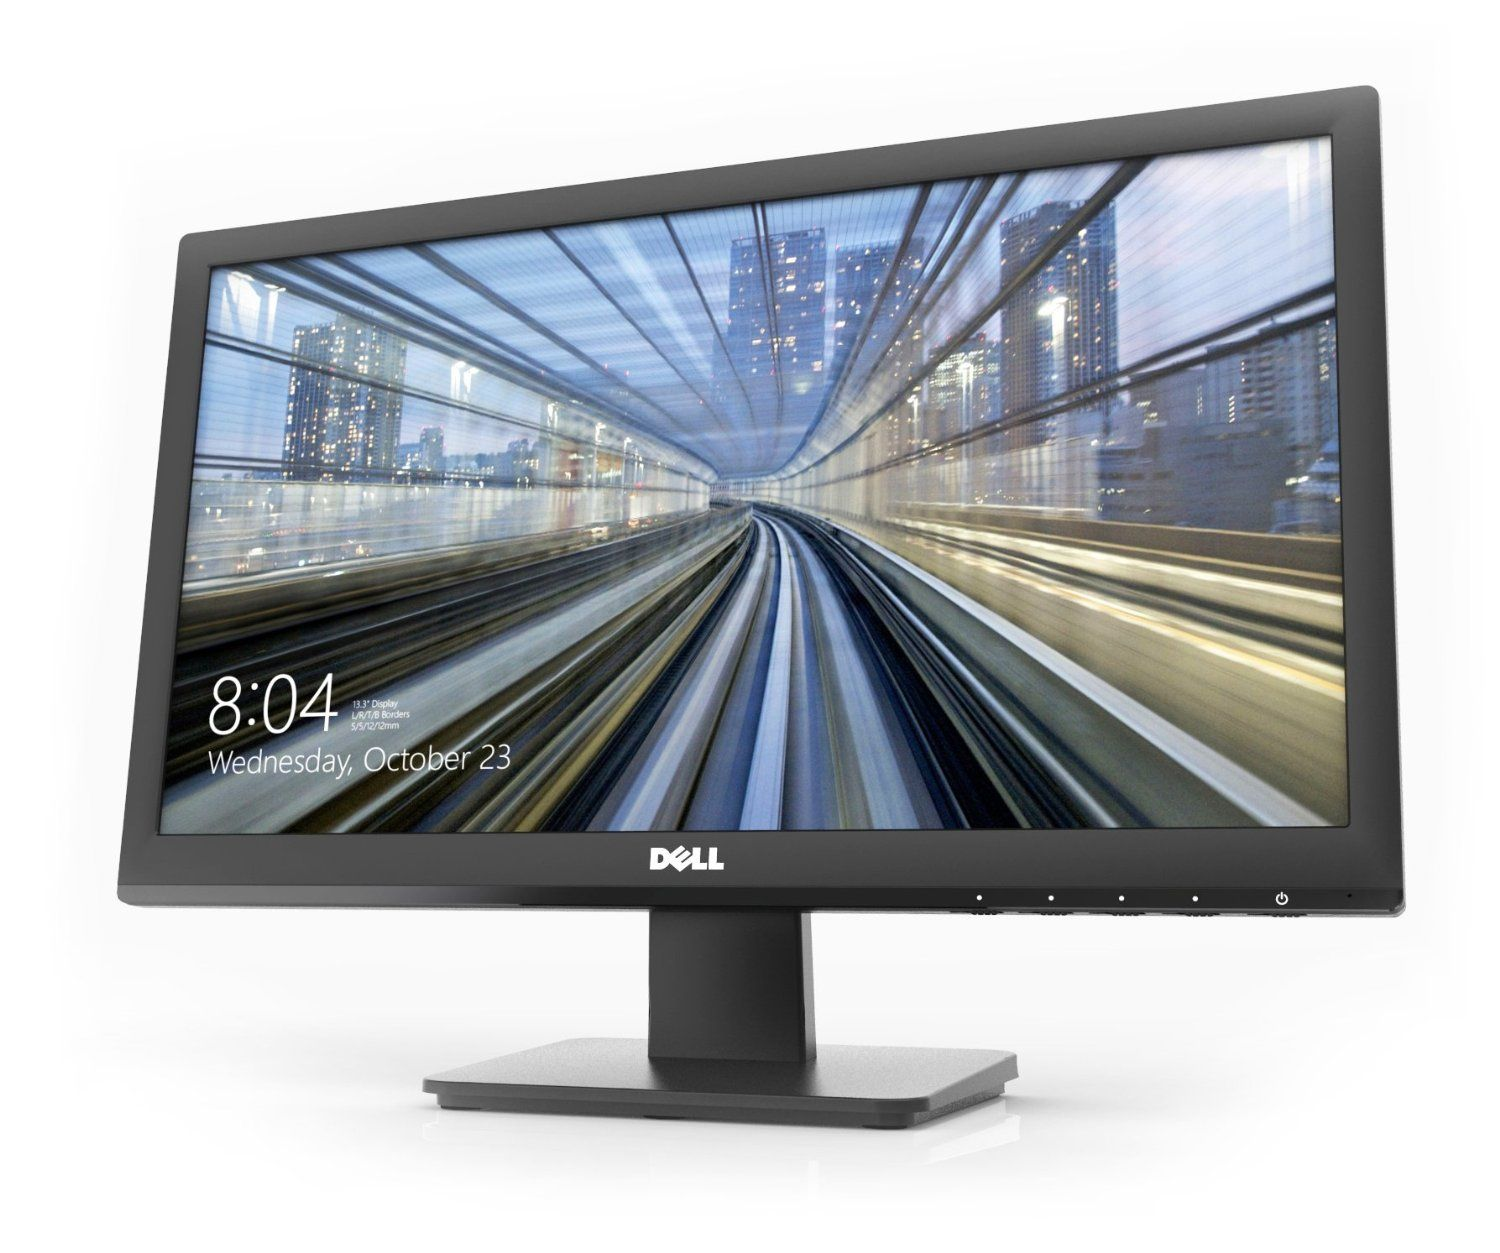 Should you buy this LED monitor or spend little more and go for premium range gaming monitor? We answer these questions and more in our Dell D2015H review (model no. 8KVY2).